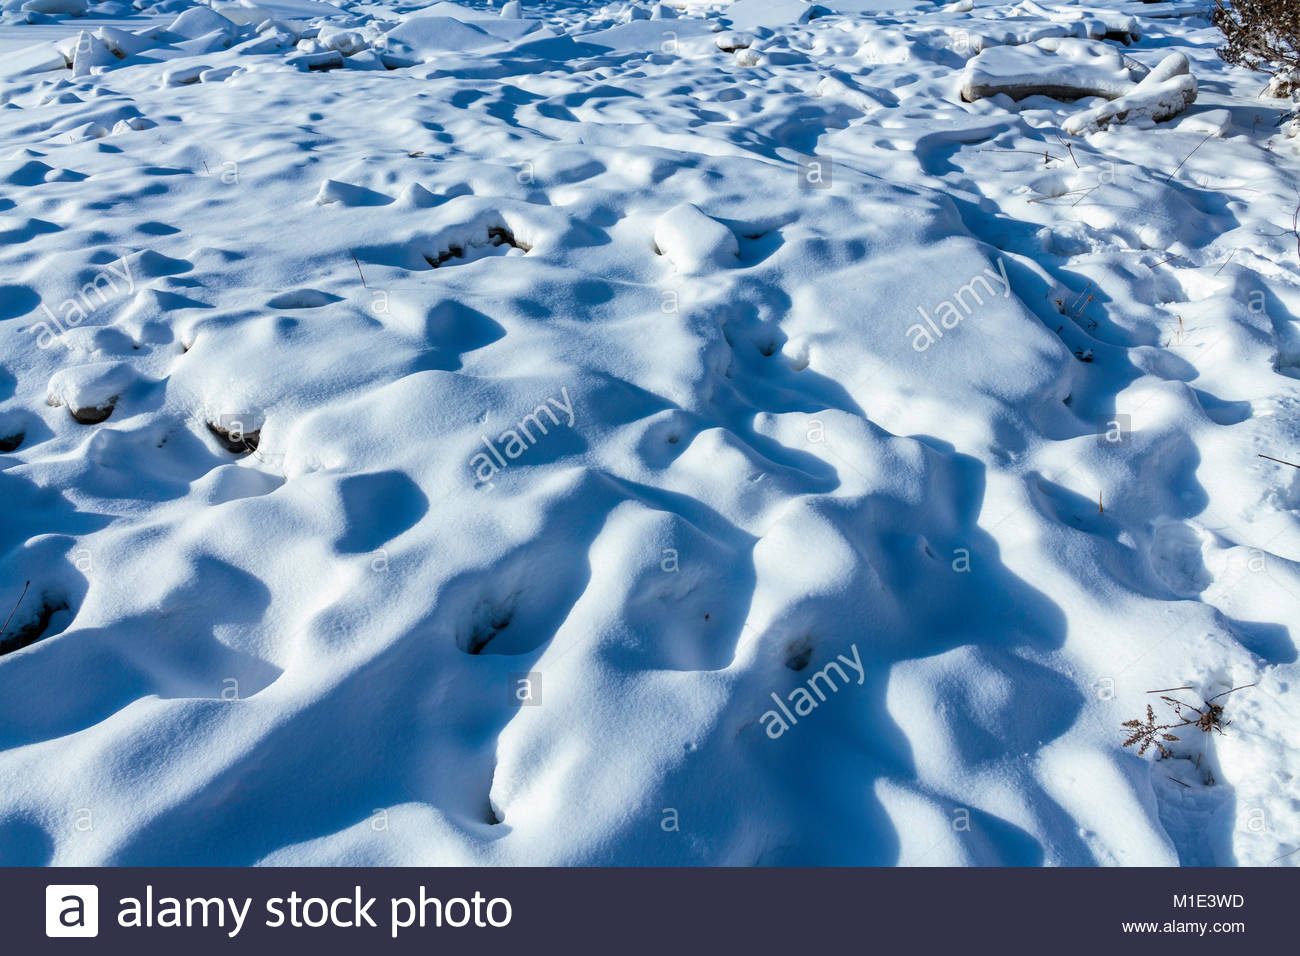 shadows-on-snow-covered-blocks-of-ice-in